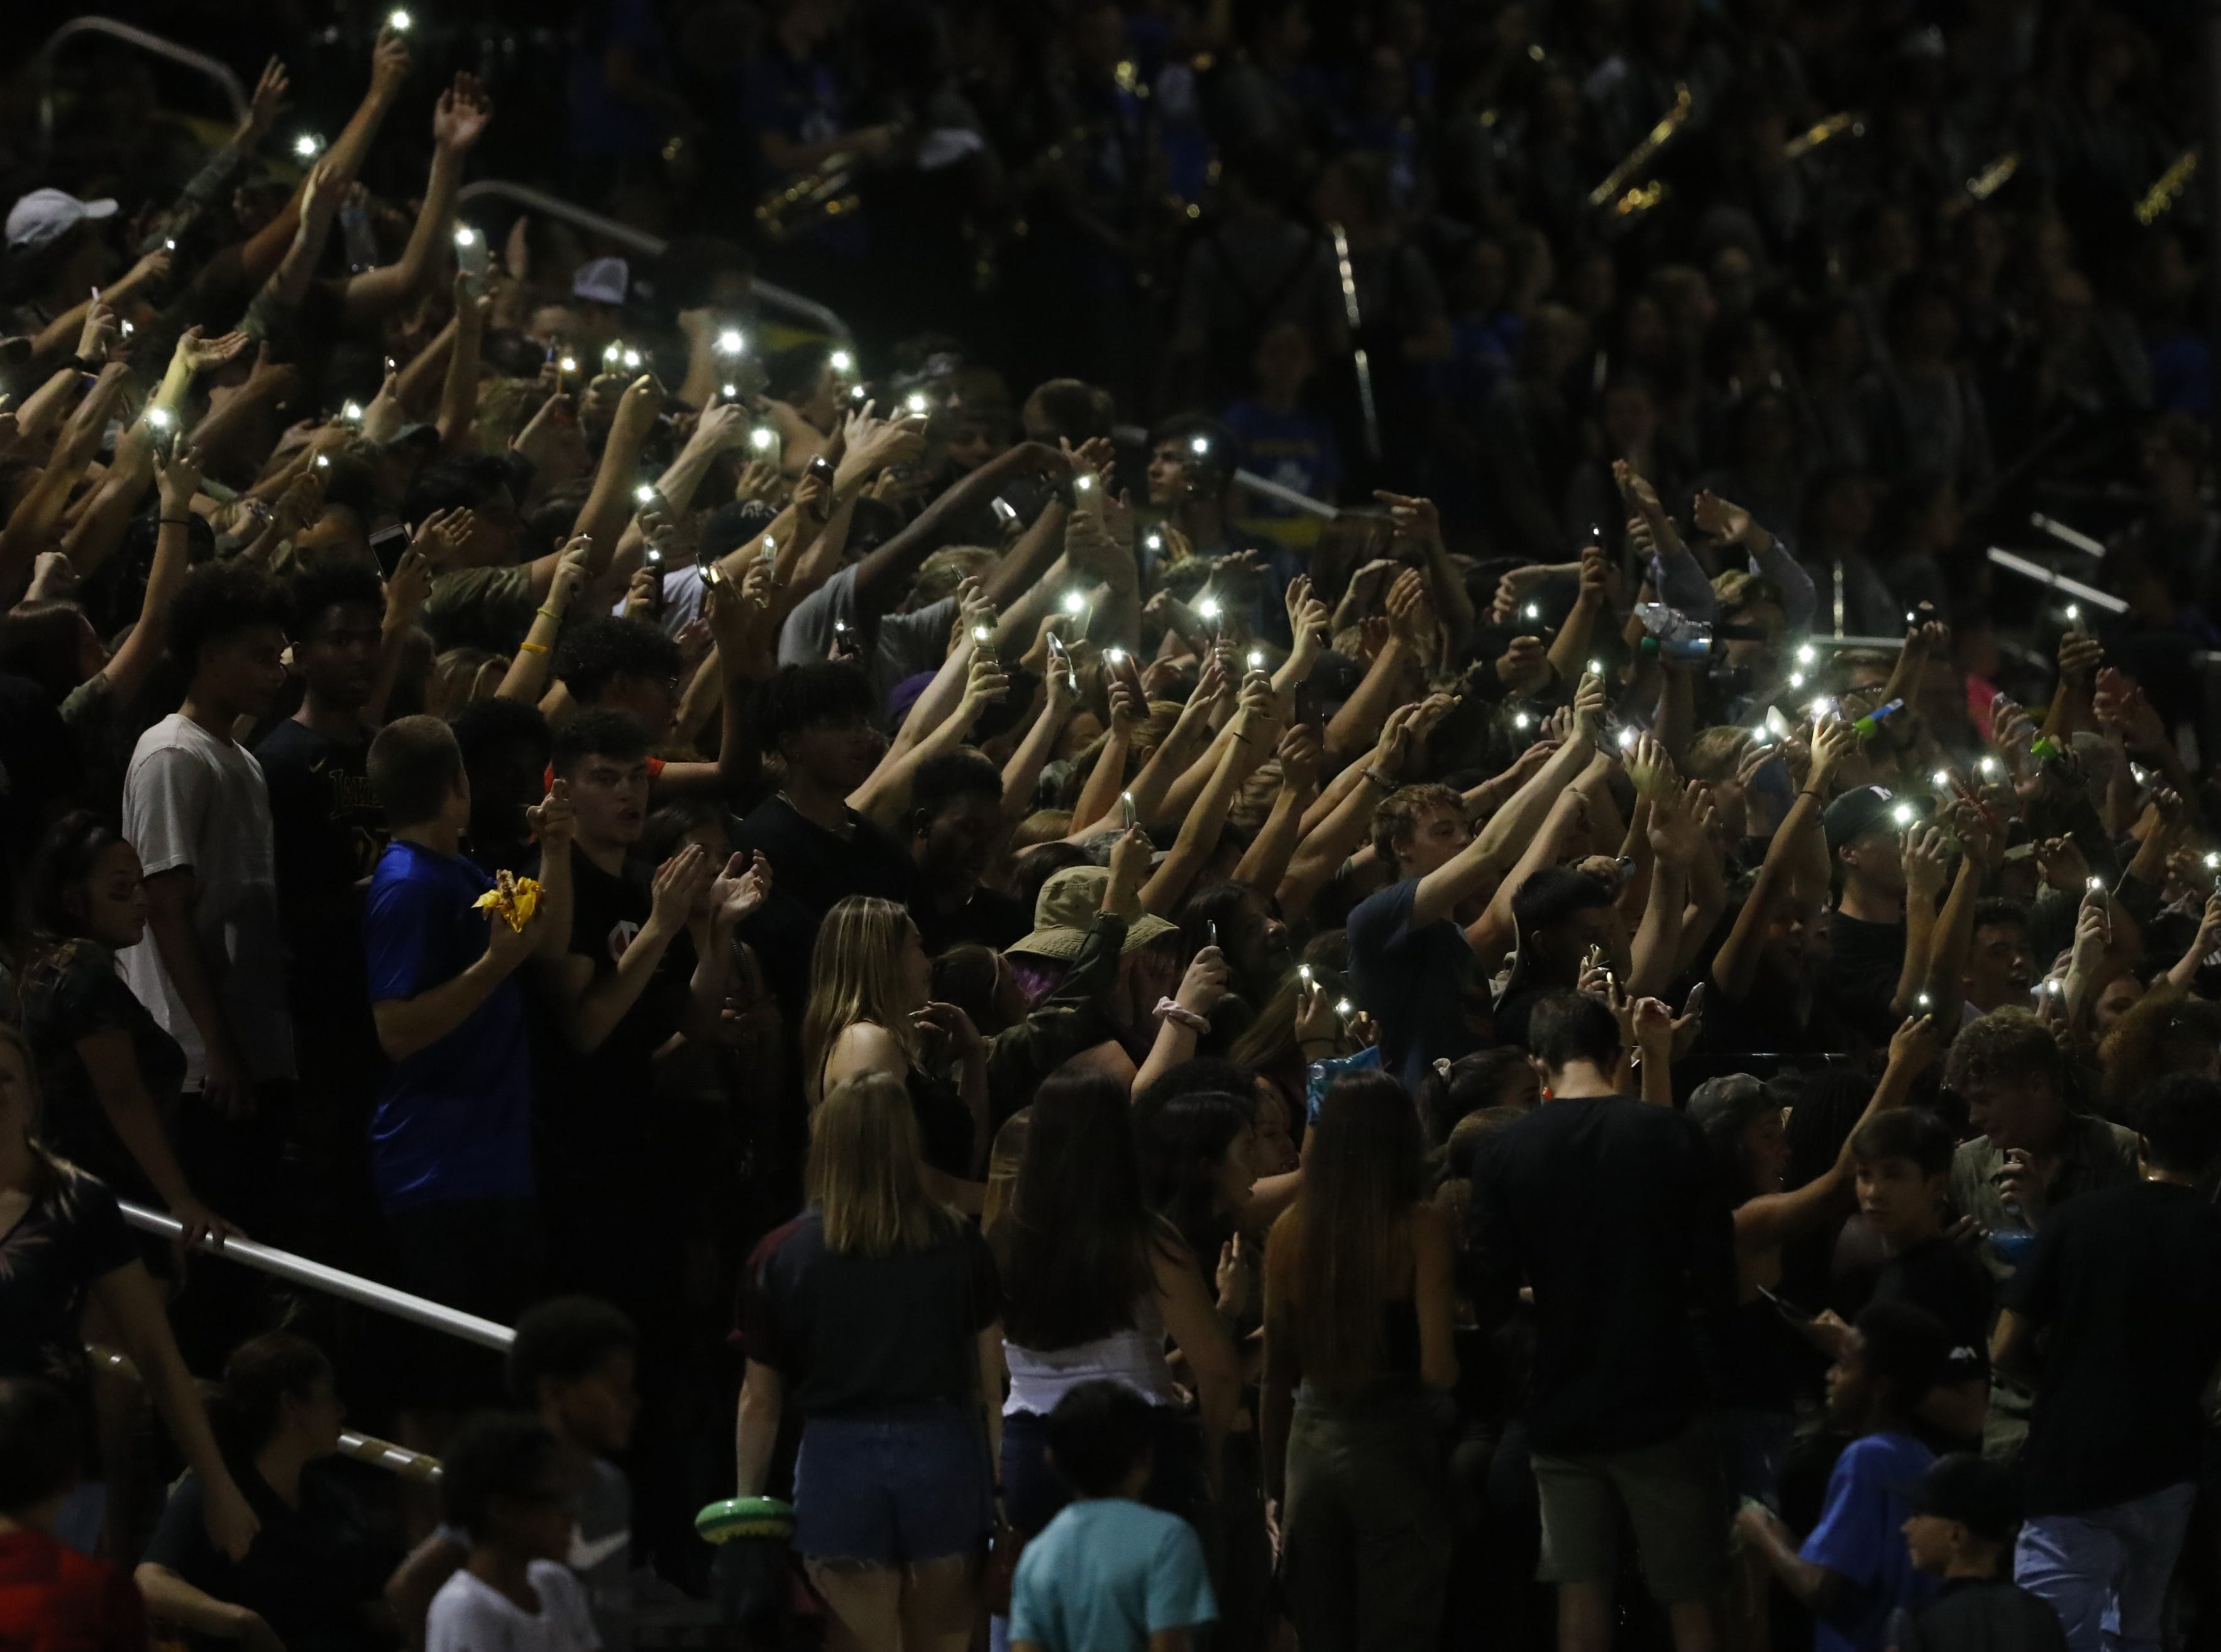 Millennium fans use their phones for lights as they chant during a game at Millennium High School in Goodyear, Ariz. on Sept. 7, 2018.